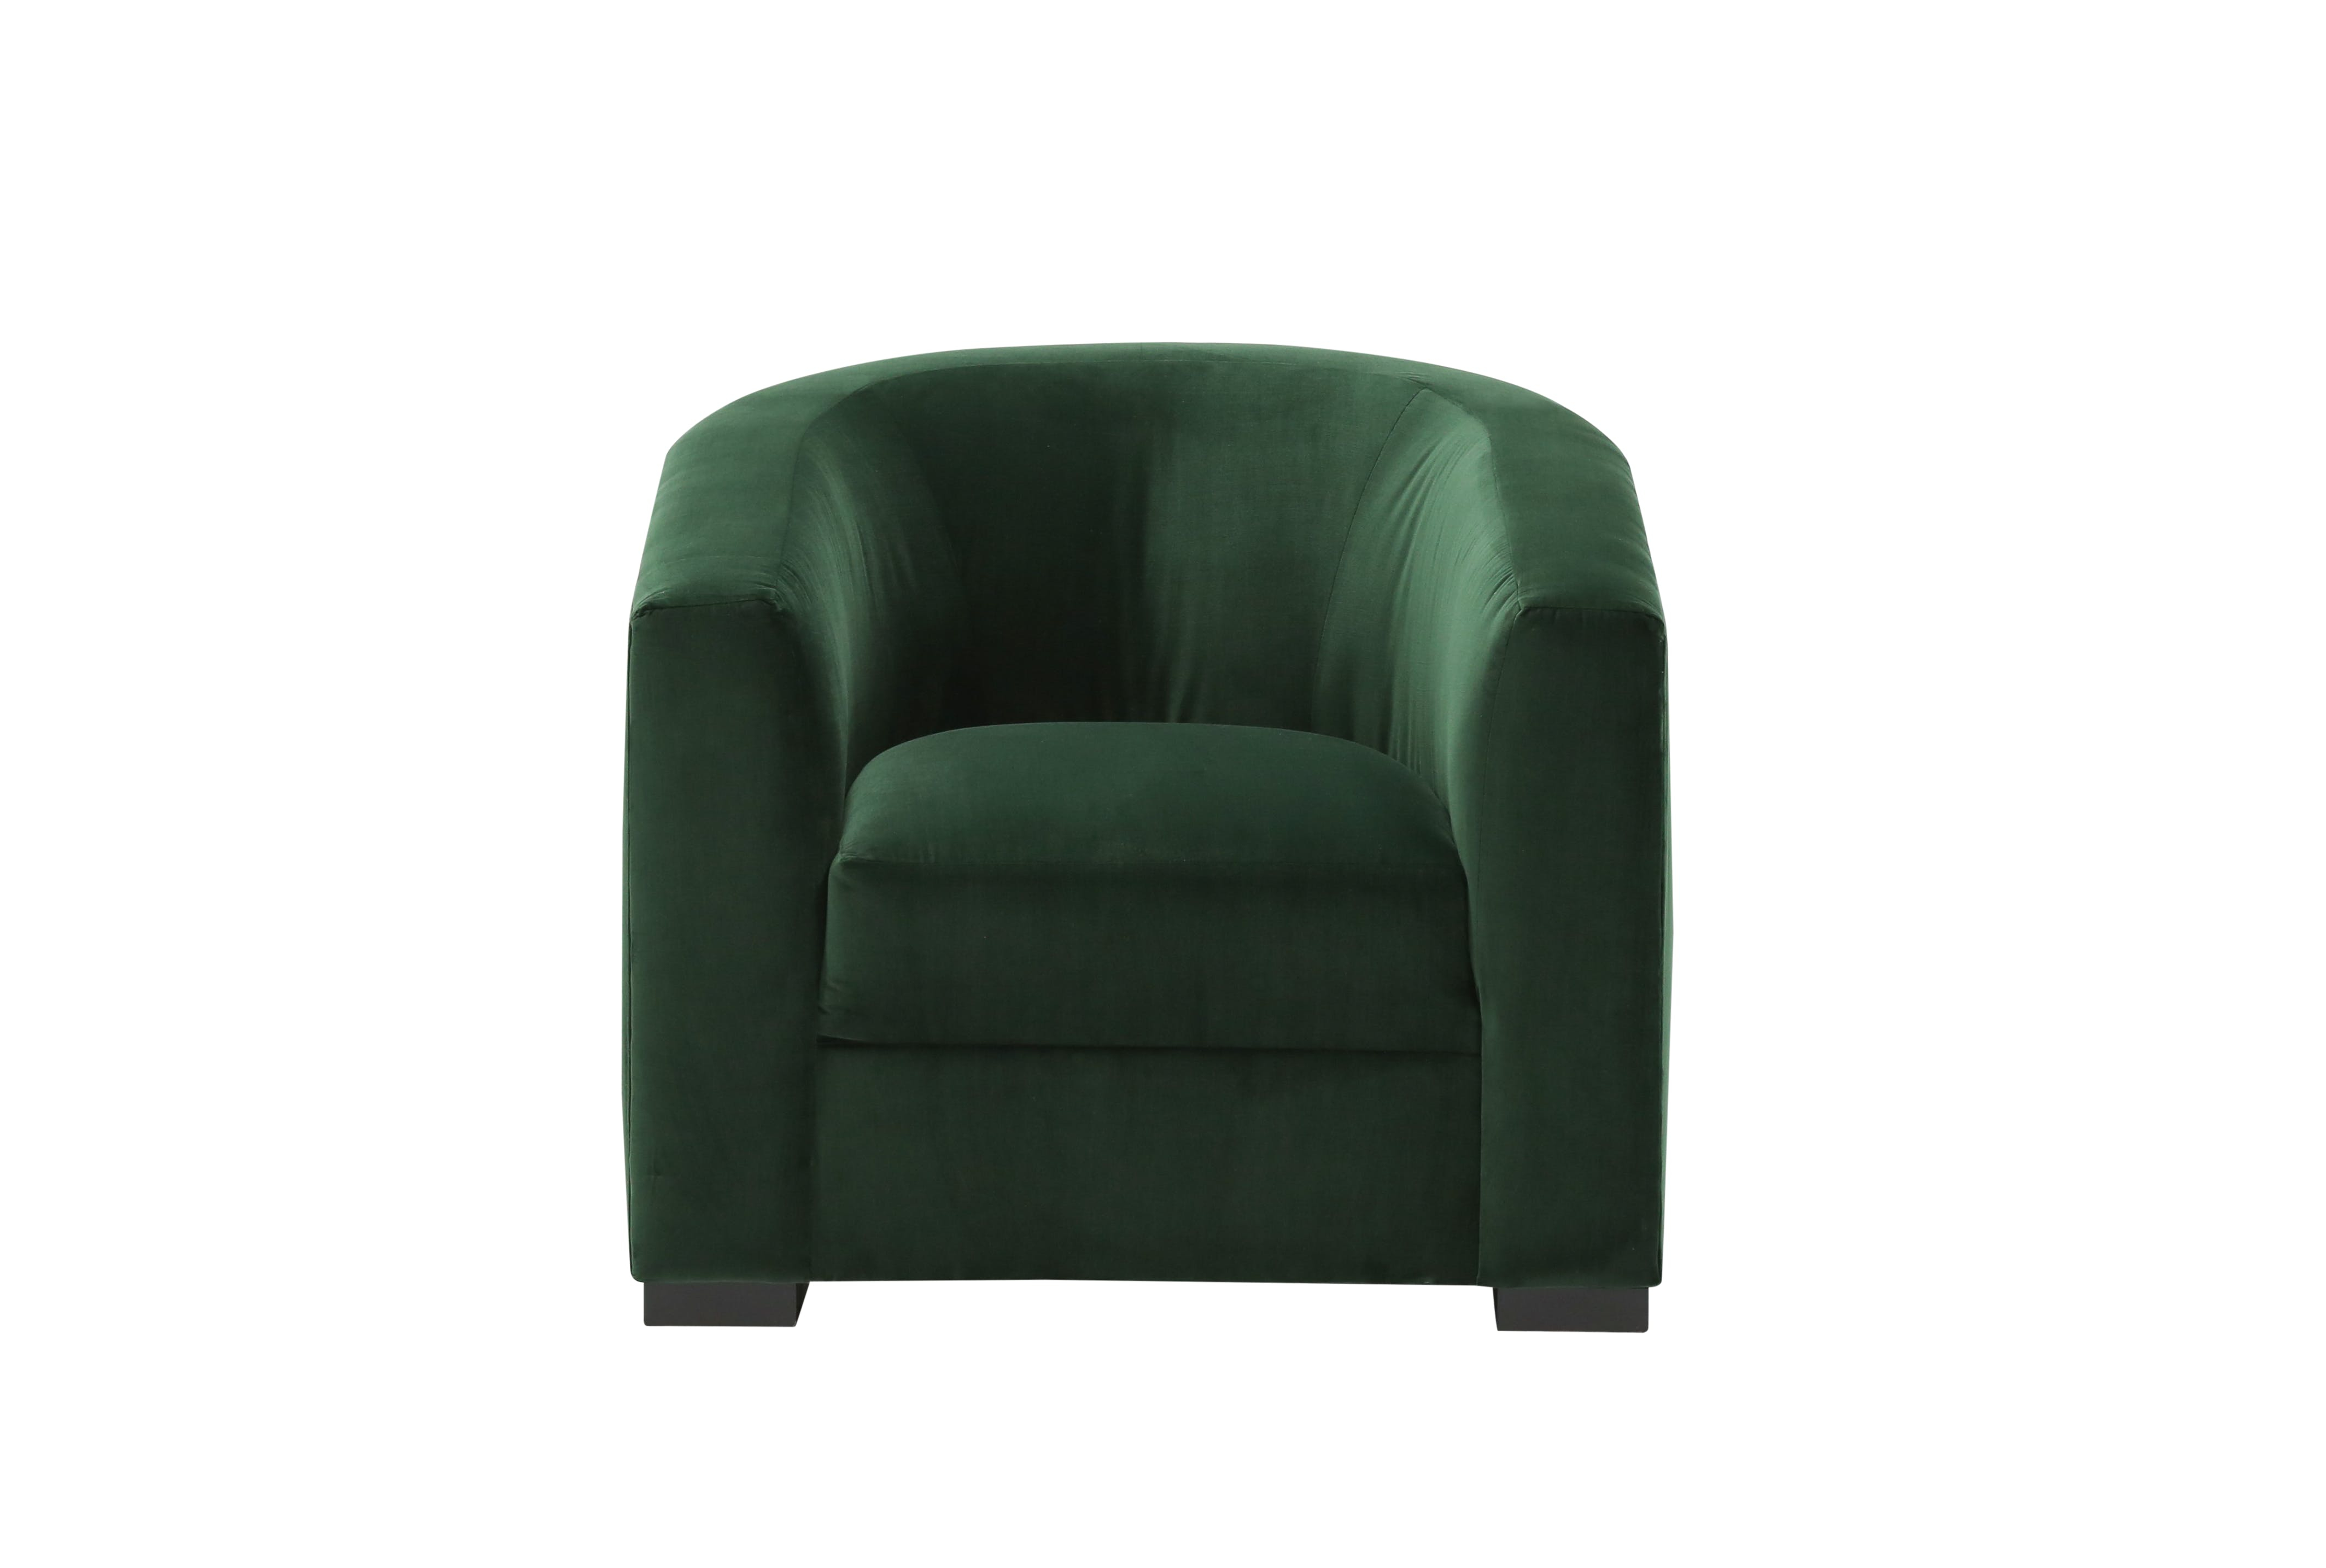 Nate Berkus Just Launched A Home Collection With Hubby Jeremiah For Matteo Arm Sofa Chairs By Nate Berkus And Jeremiah Brent (View 11 of 25)